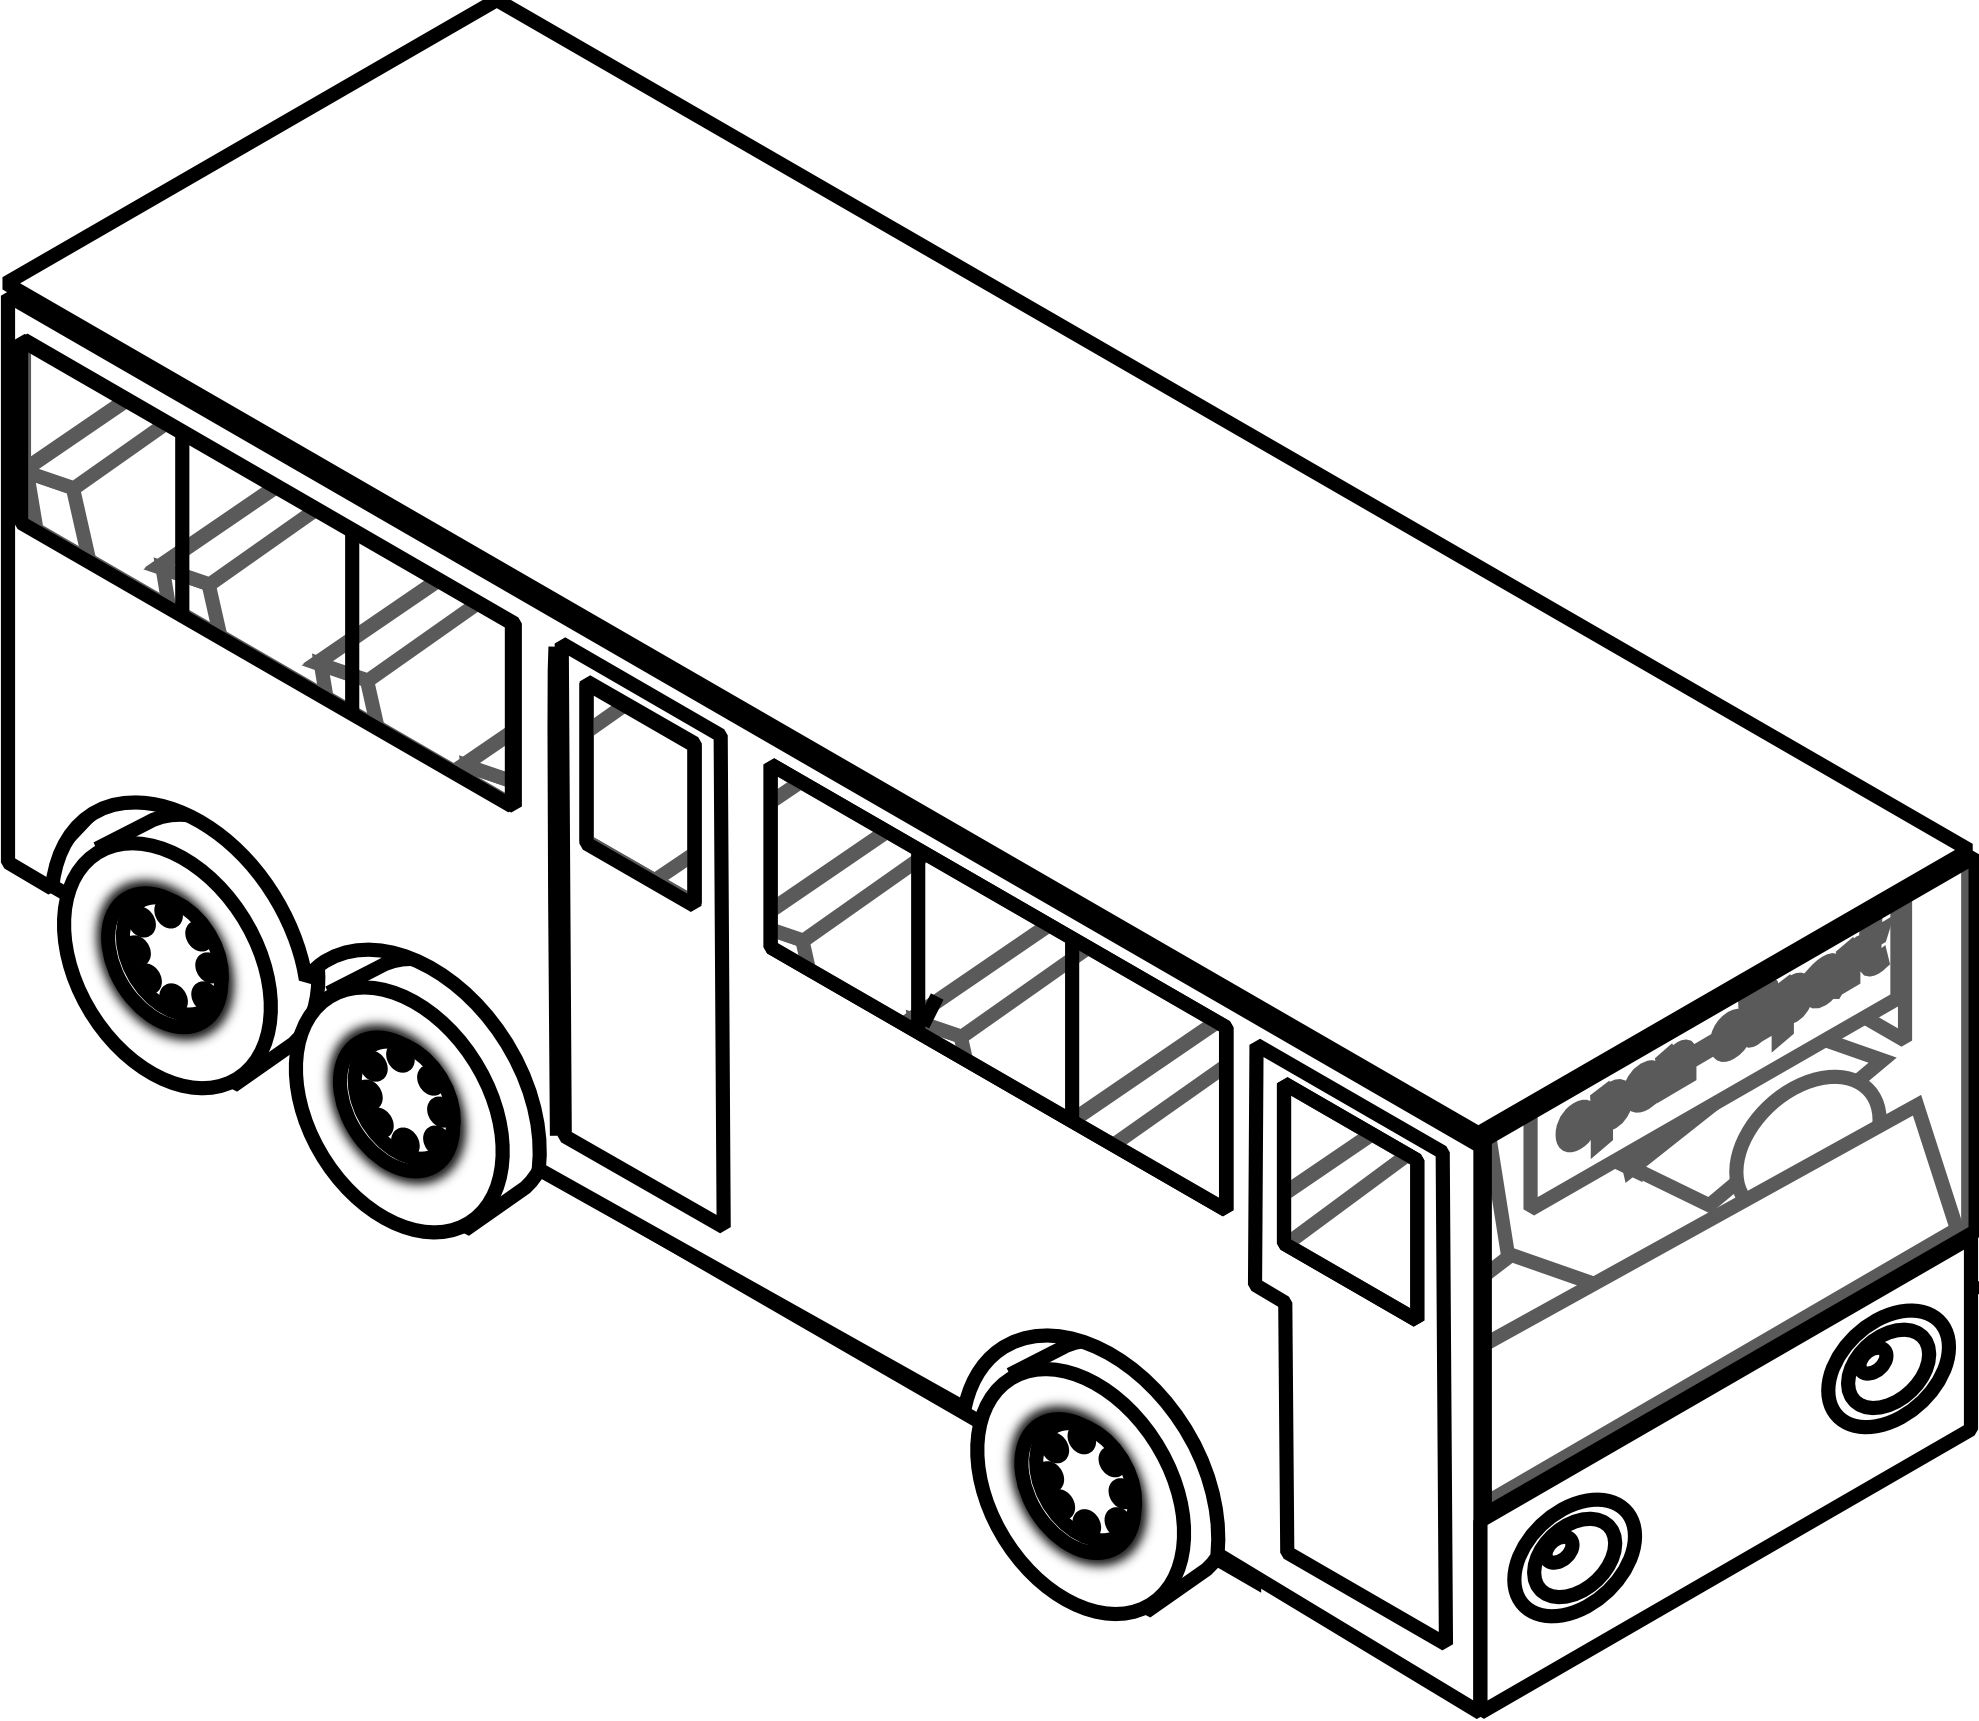 Coloring clipart bus. Drawing images at getdrawings